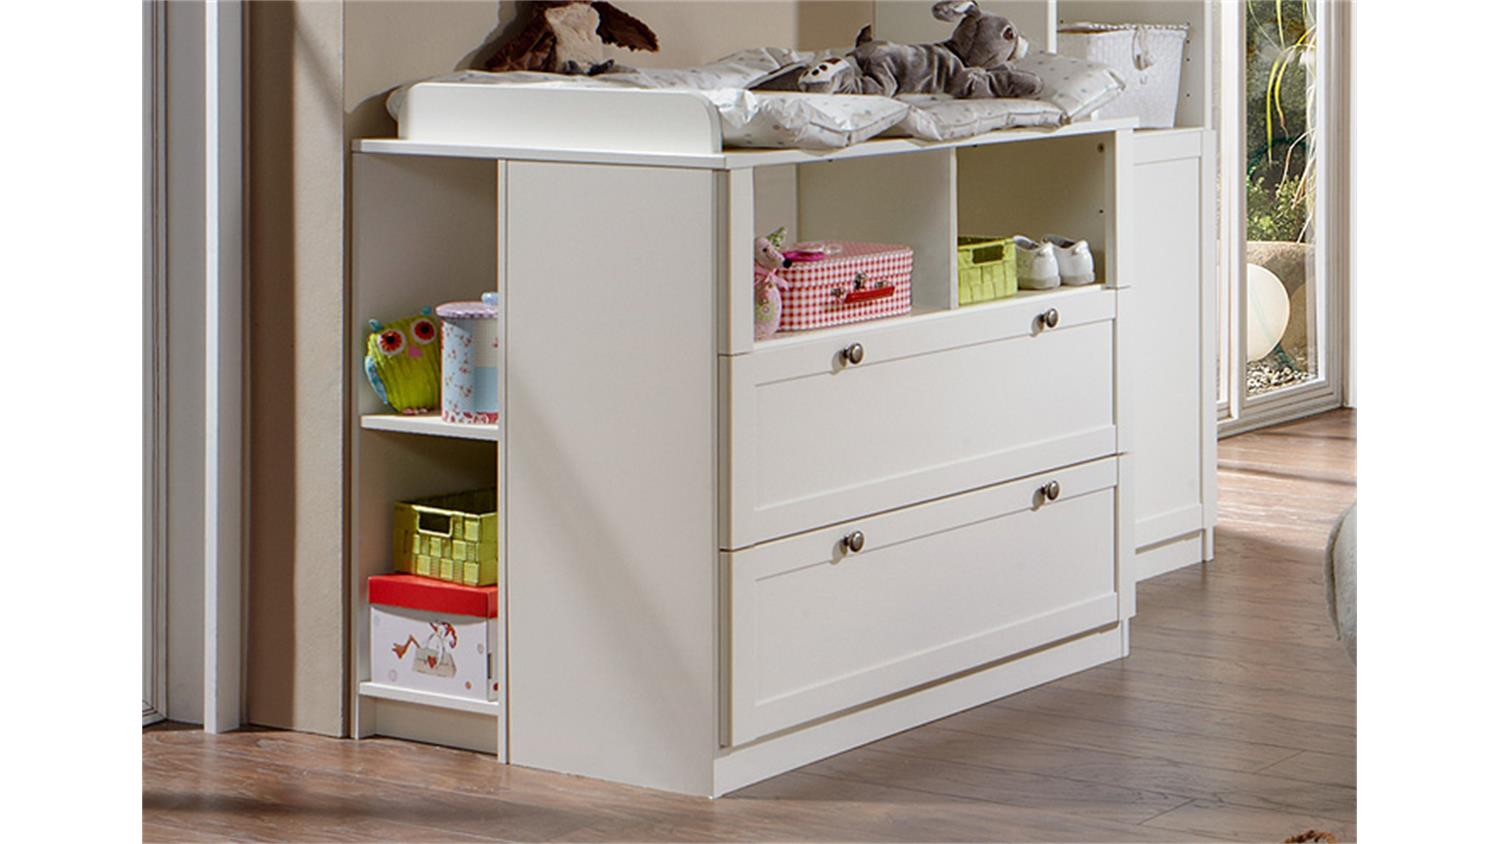 dekor wickeltisch babyzimmer home design ideen. Black Bedroom Furniture Sets. Home Design Ideas